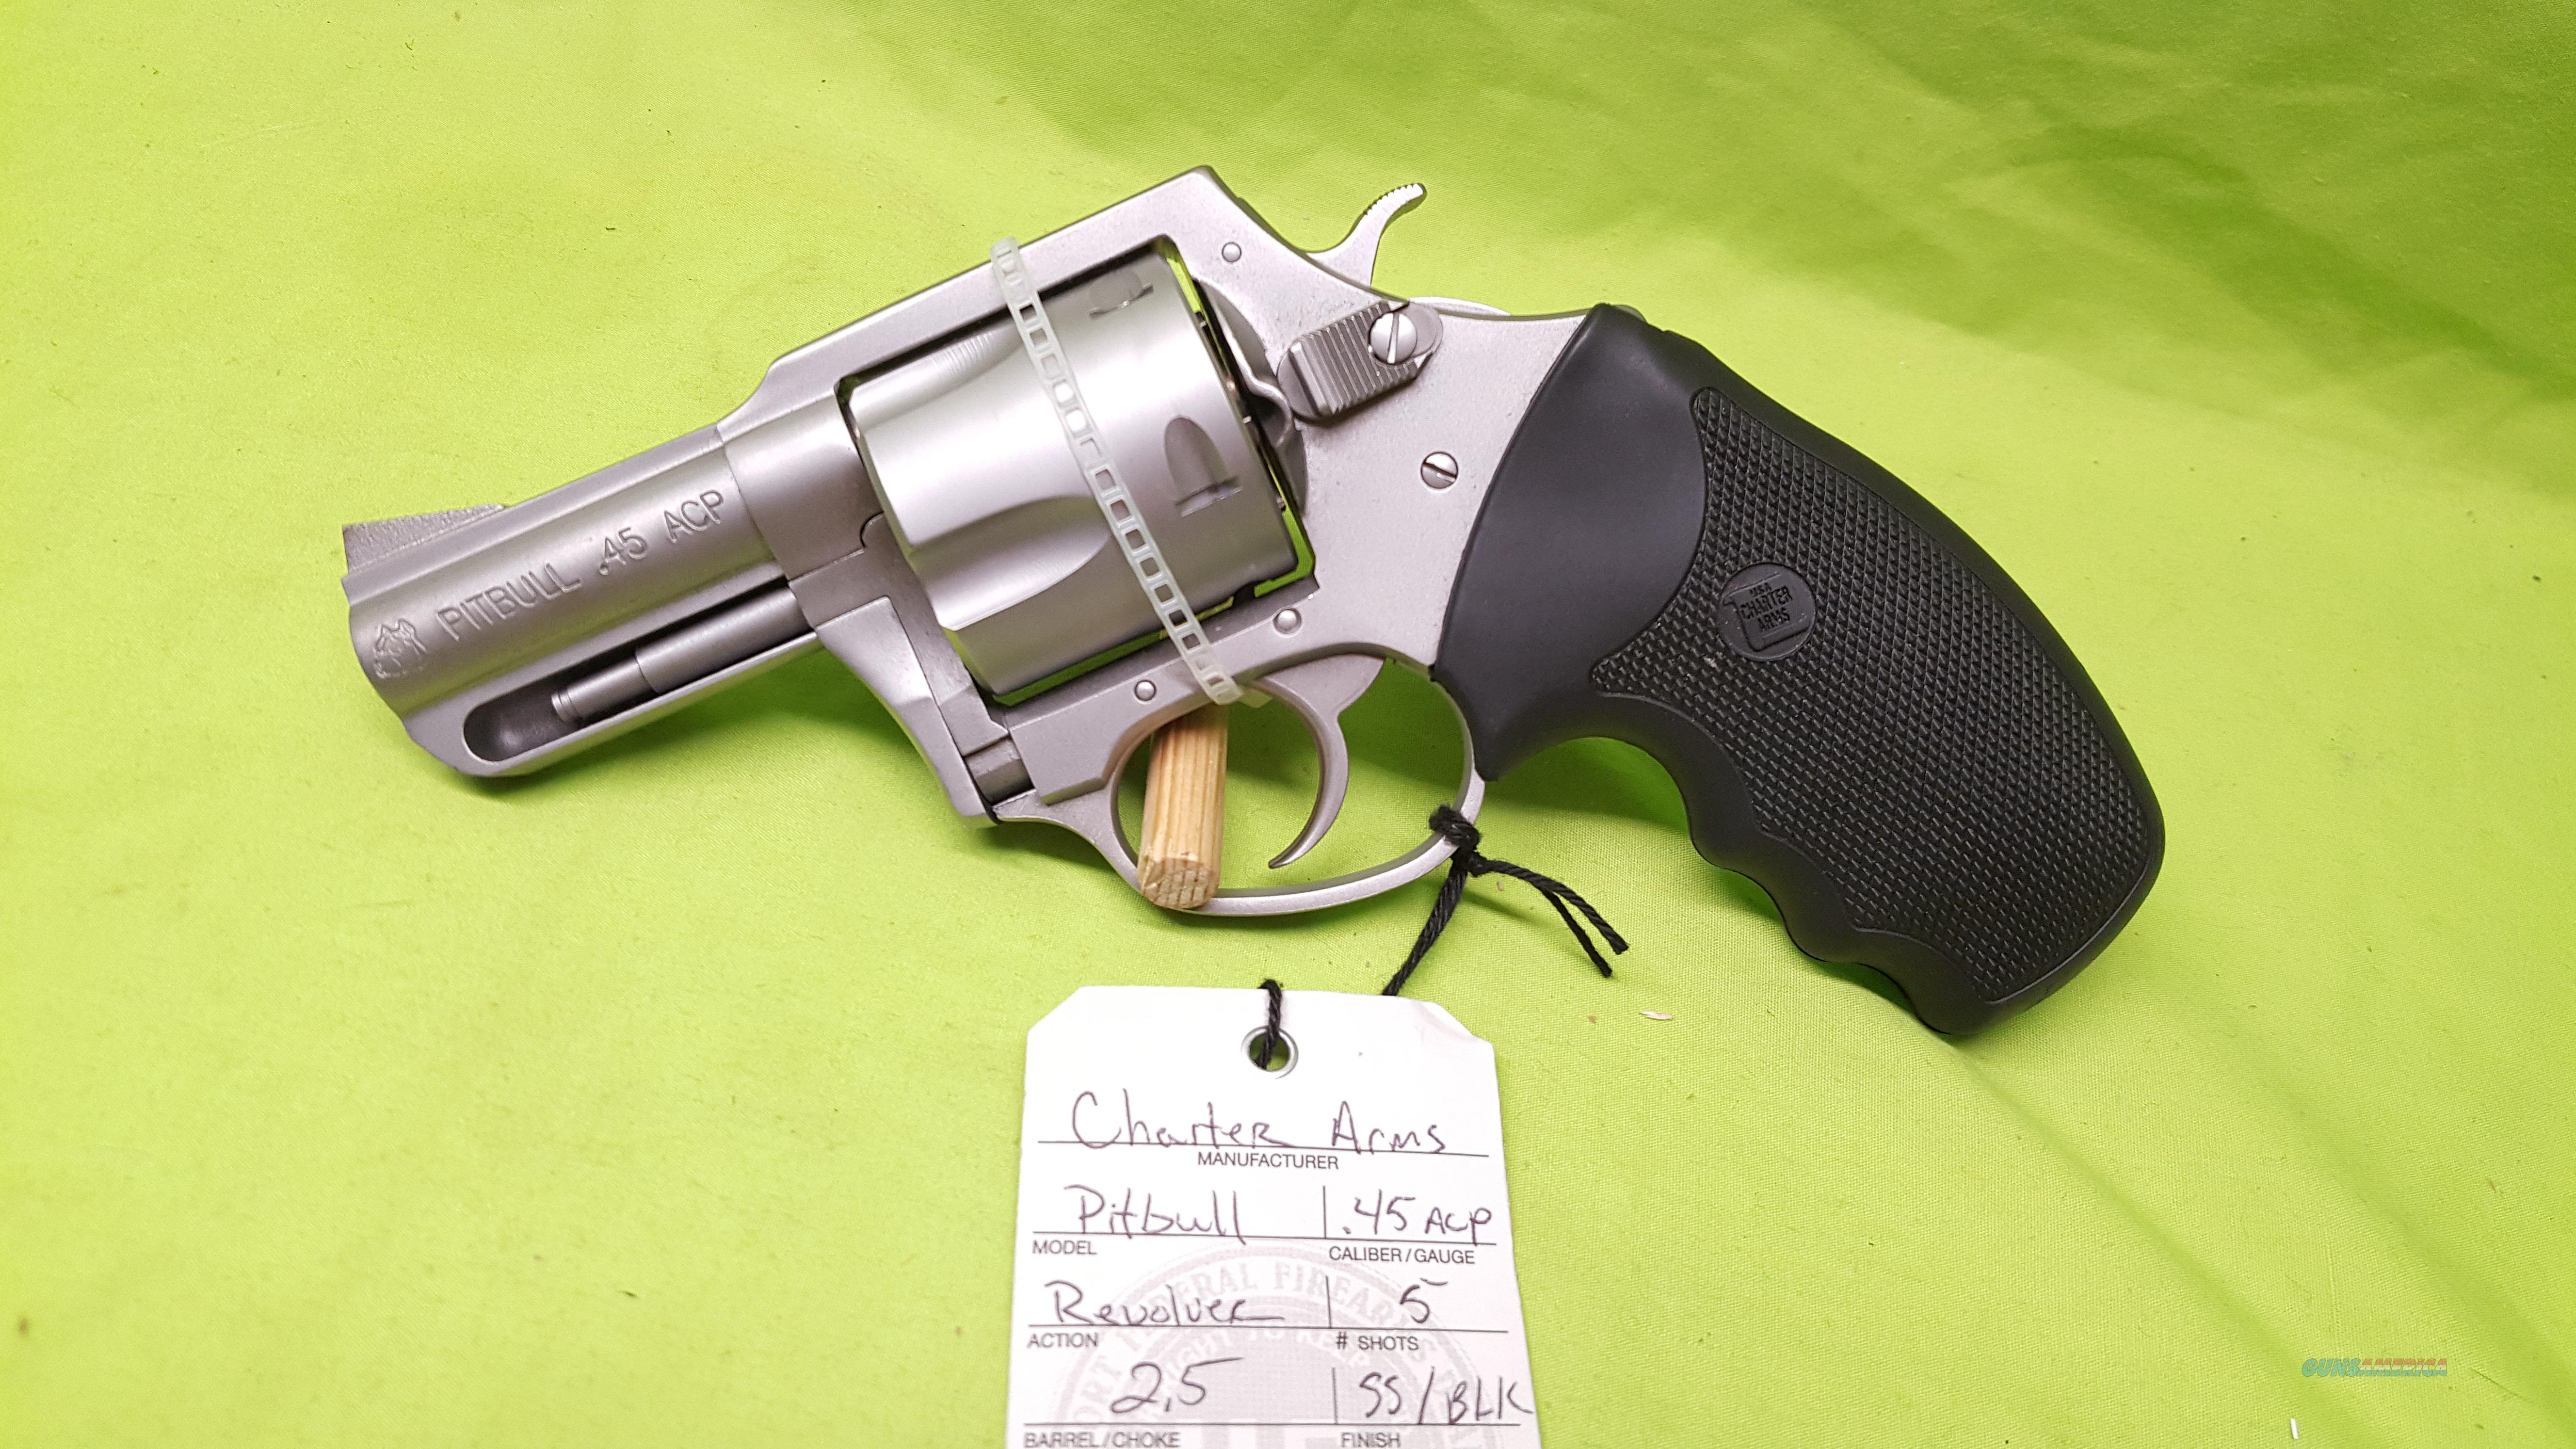 CHARTER ARMS PITBULL 45 45ACP REVOLVER STAINLESS